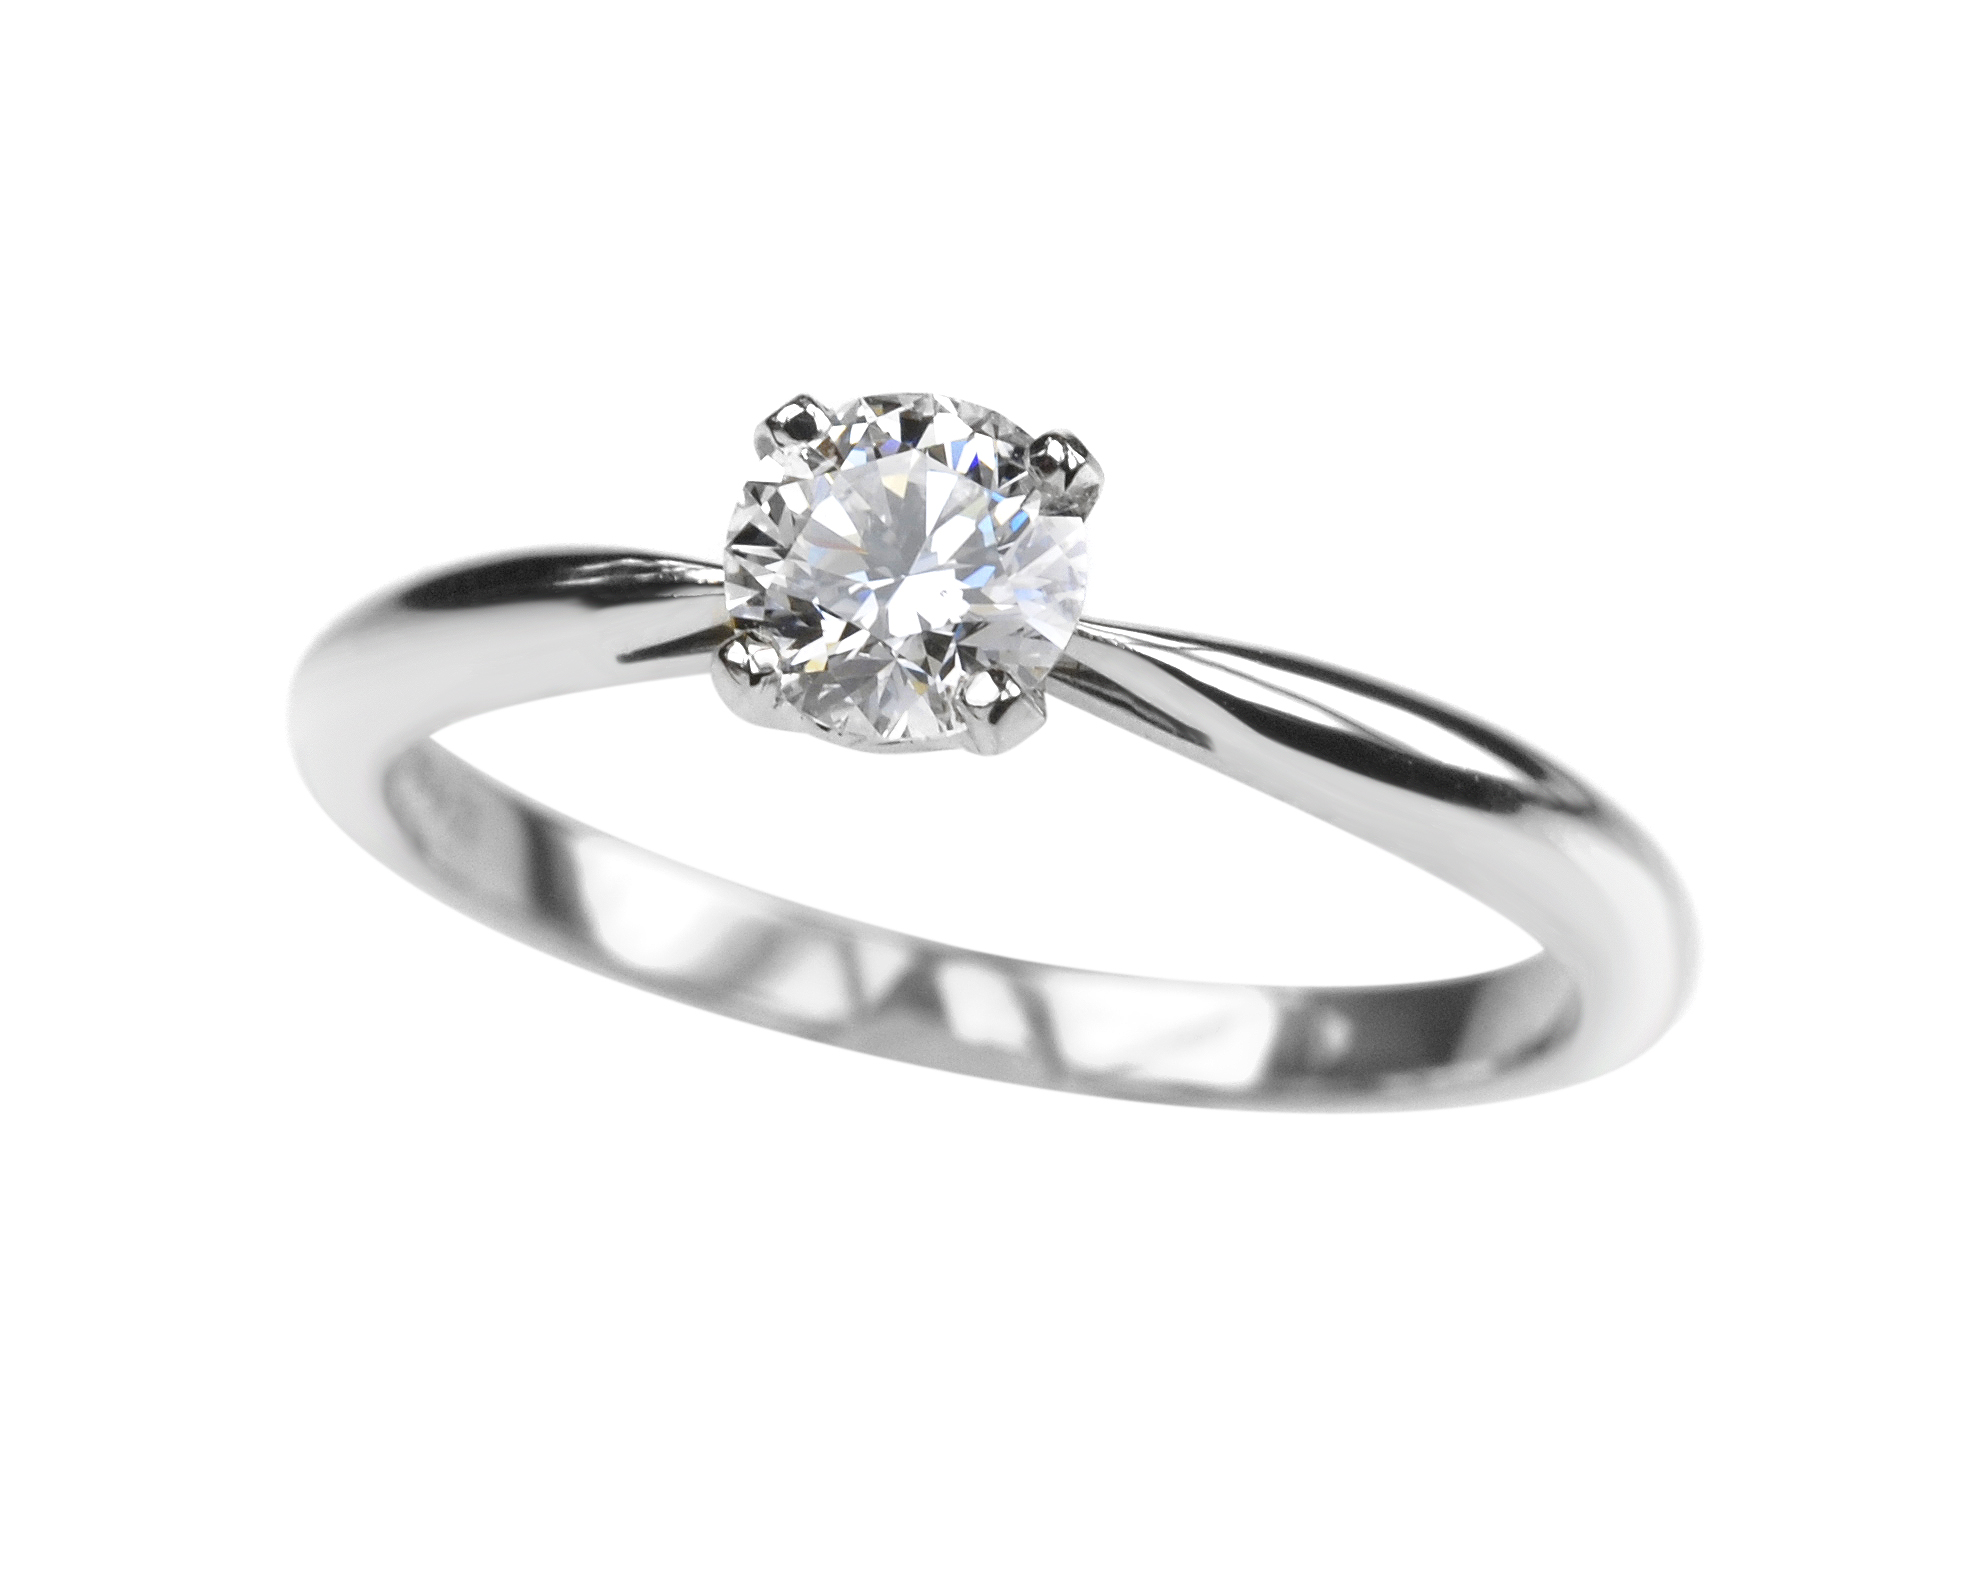 dimond floral engagement glamour rings diamond main gallery filigree affordable under courtesy weddings